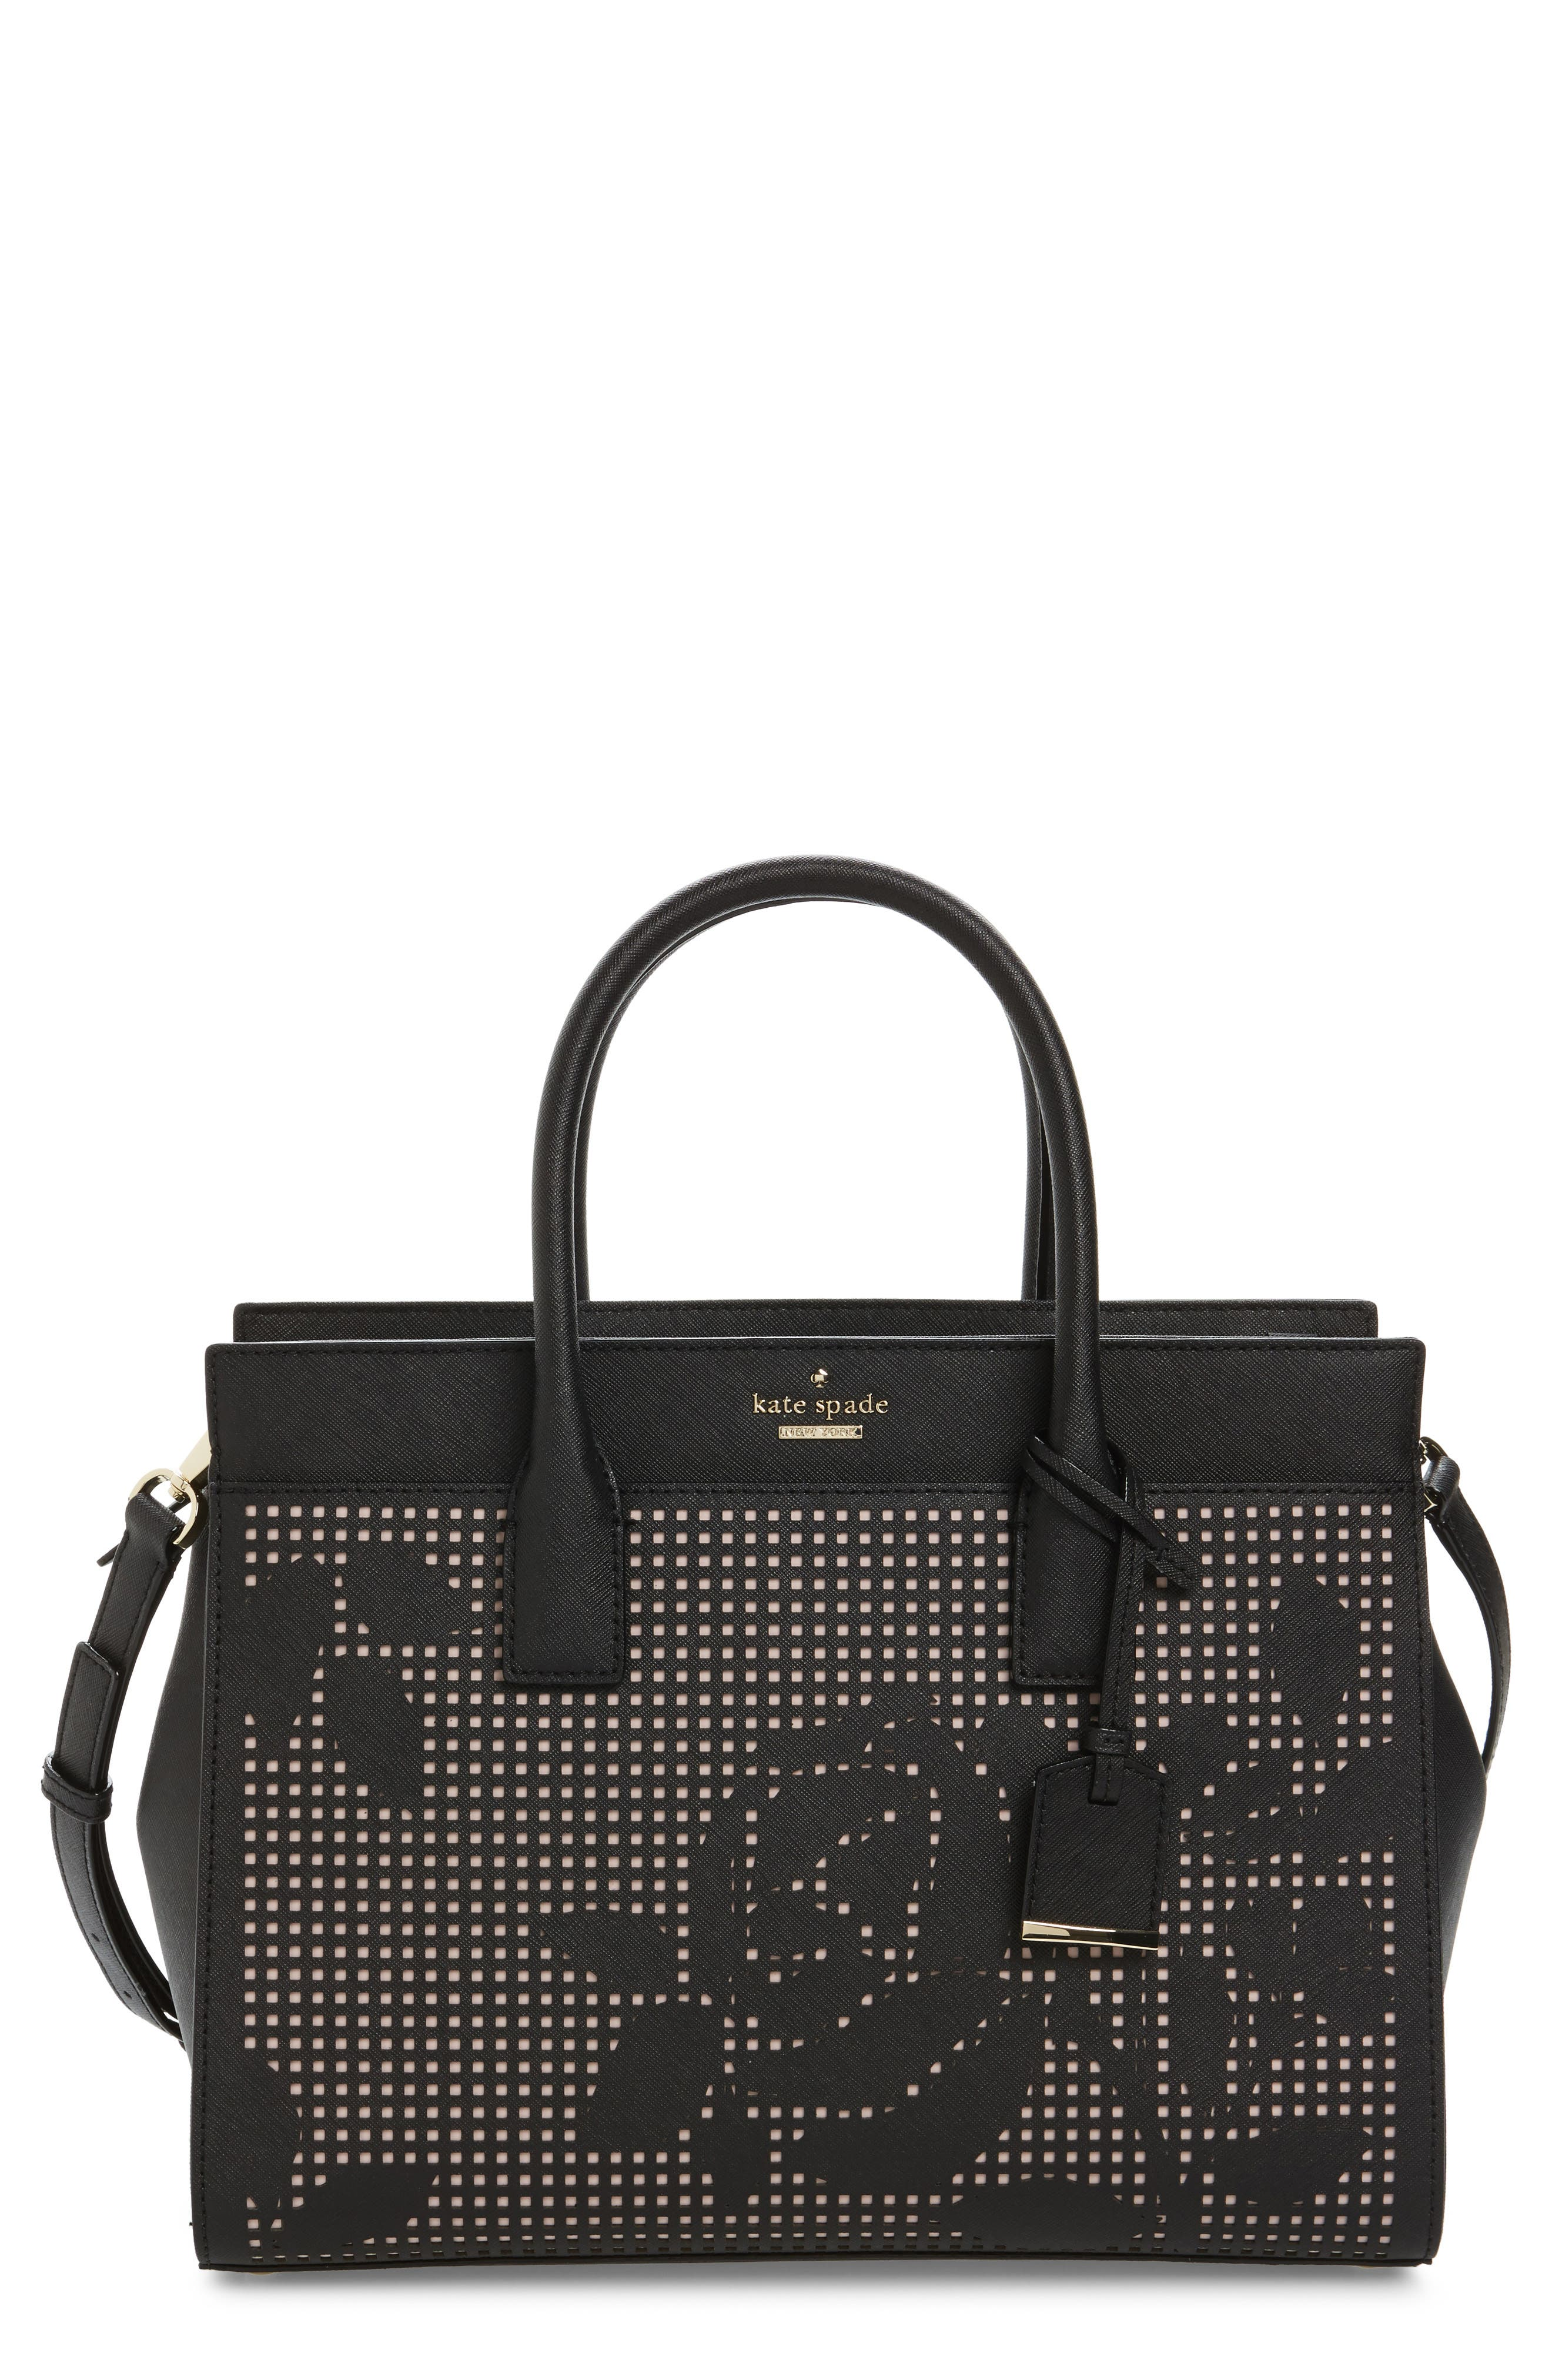 KATE SPADE NEW YORK cameron street - candace perforated leather satchel